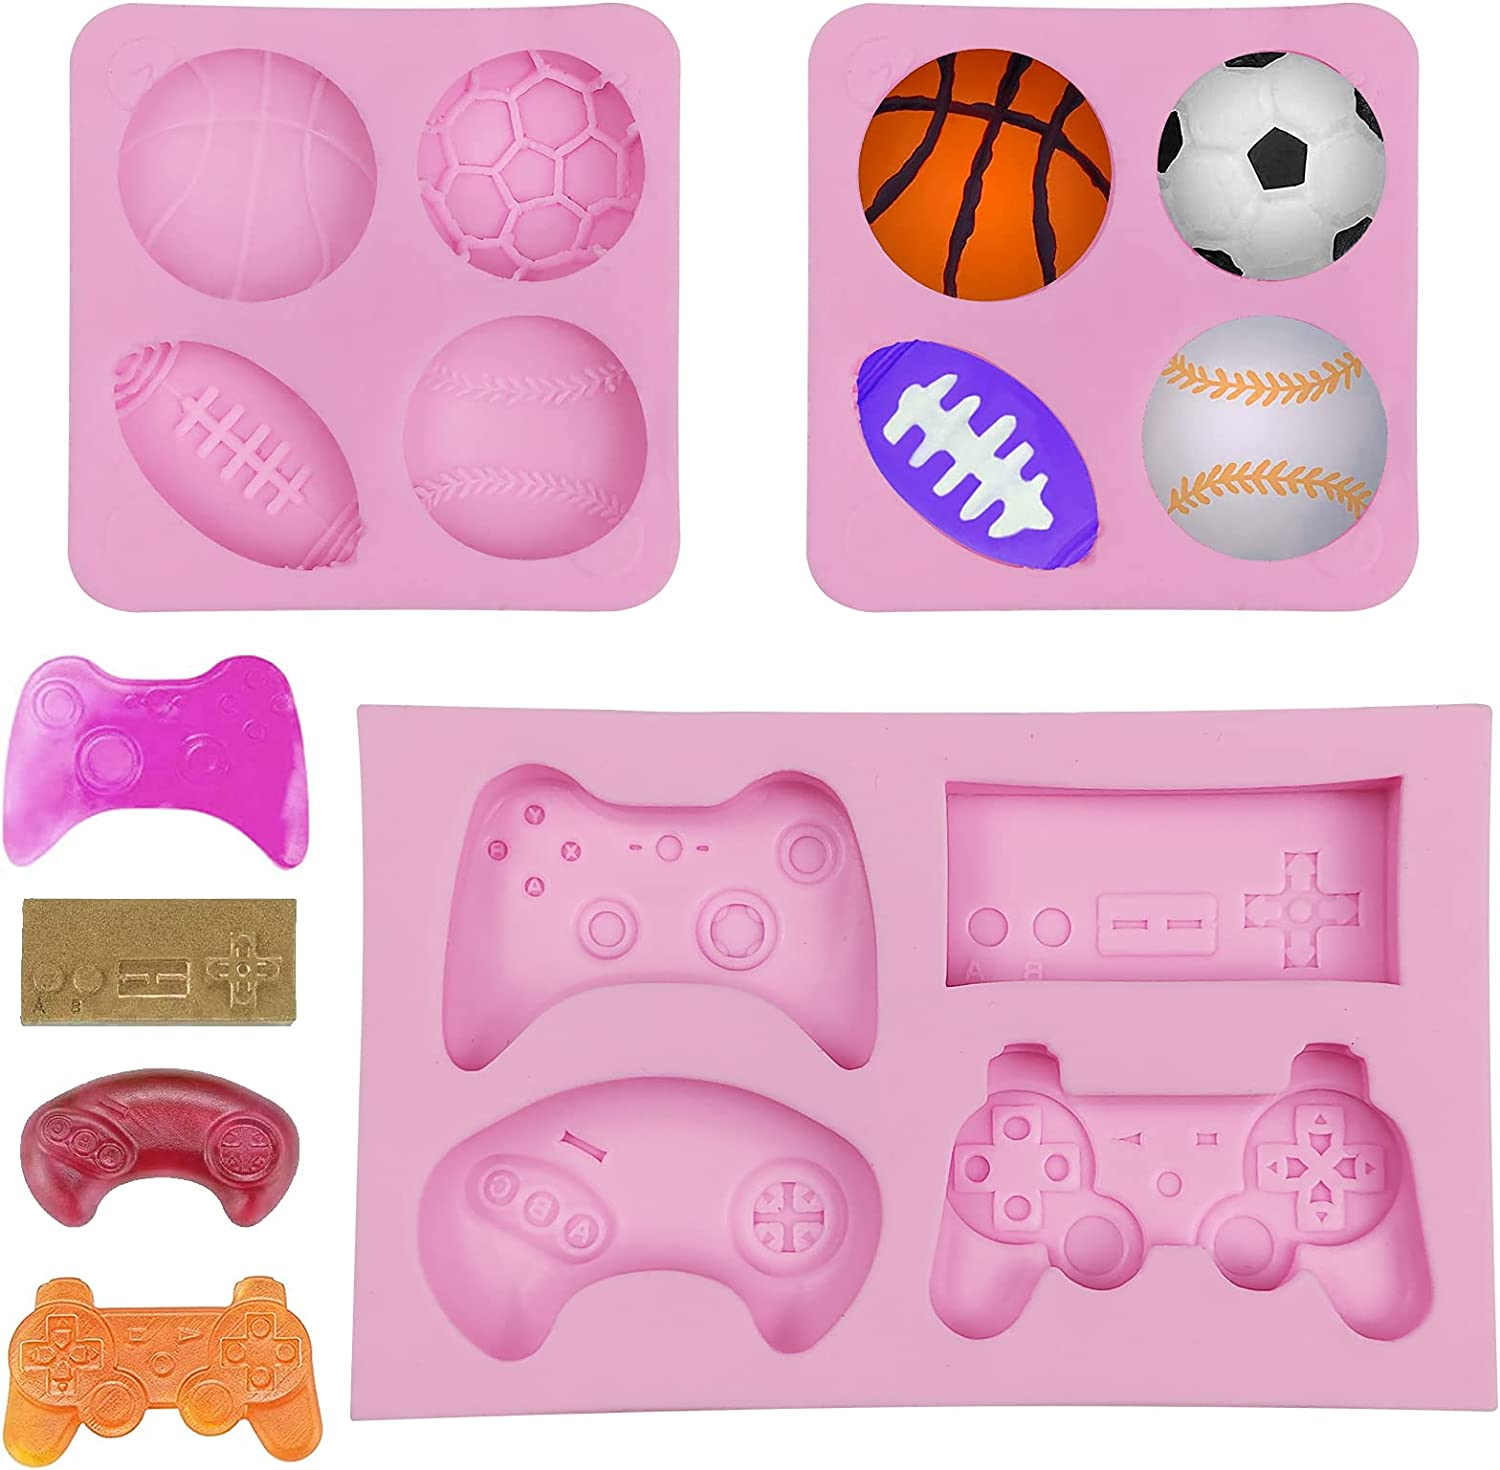 3 Under blast sales Pack Chocolate Fondant Molds Sales of SALE items from new works Game Controller Mold S Cake Ball